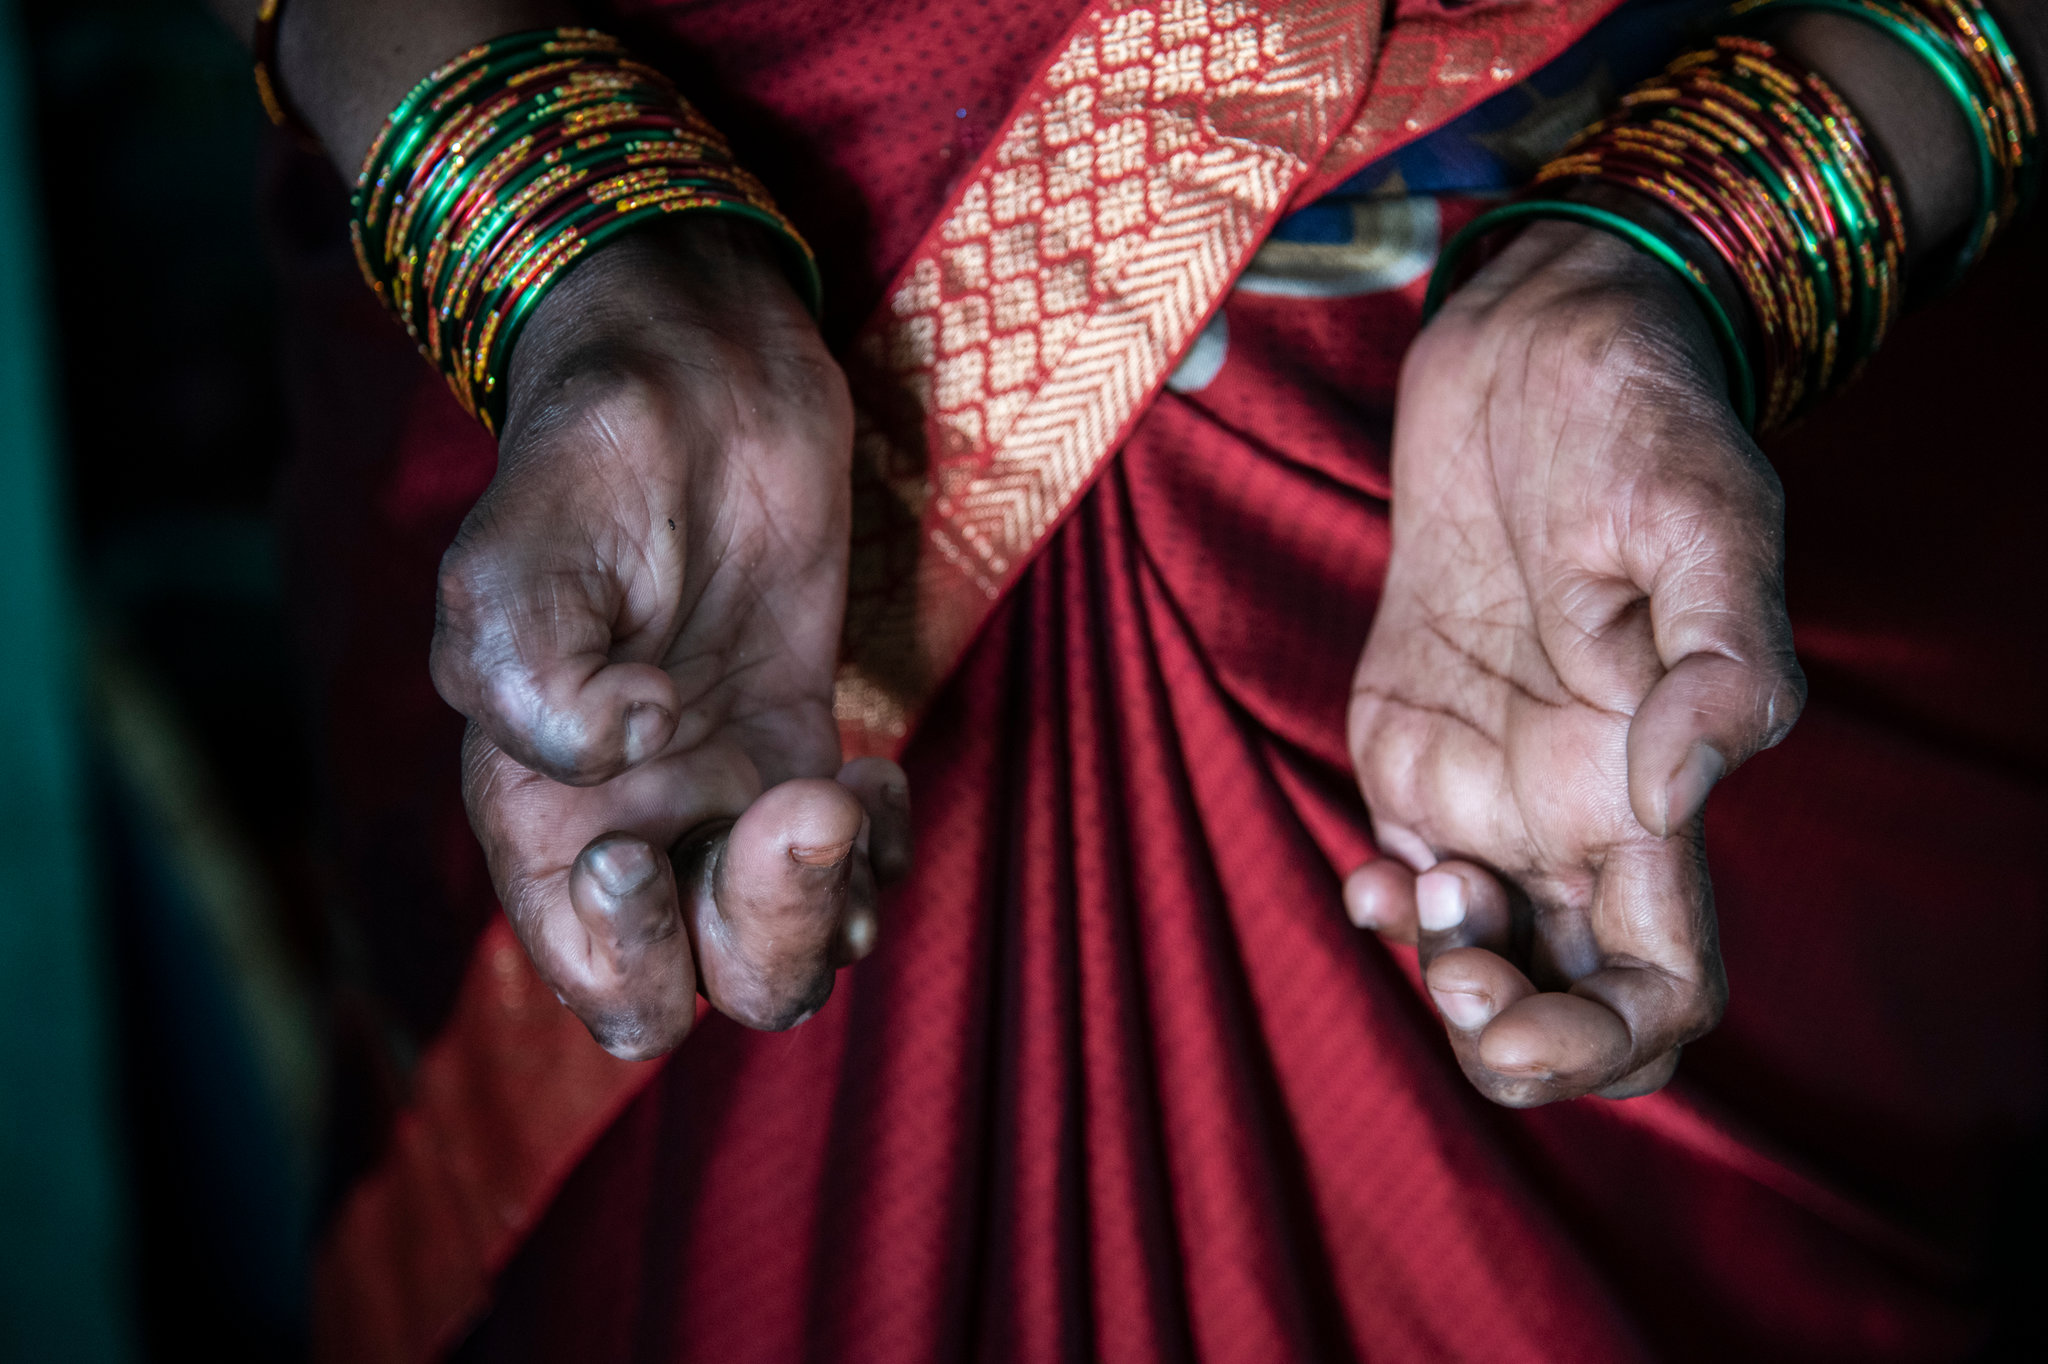 Leprosy & stigma: A tough battle to win in India